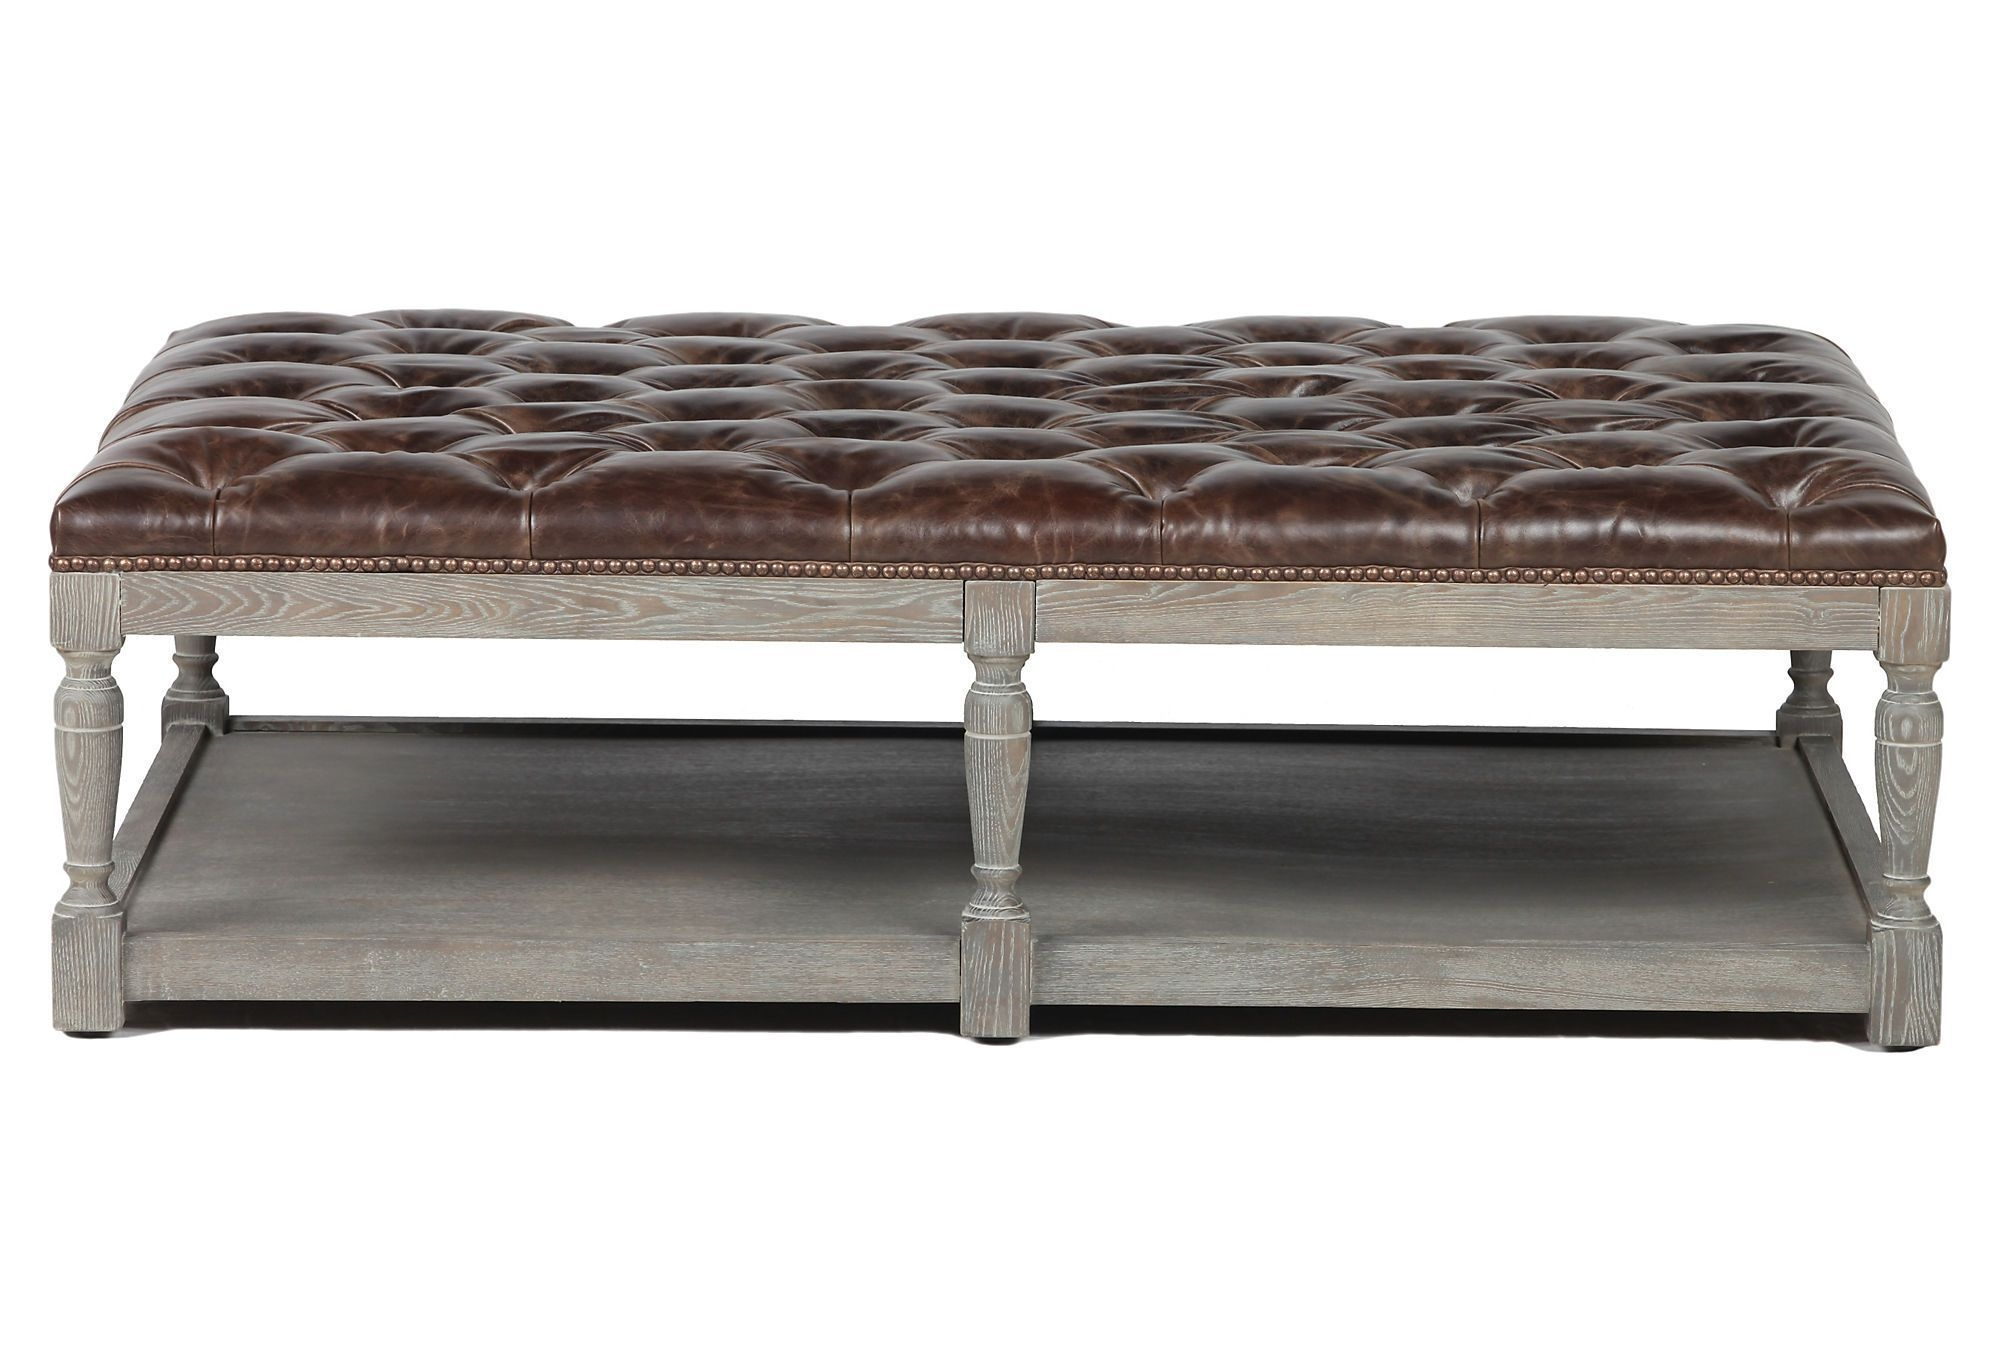 Amazing Leather Tufted Ottoman Coffee Table